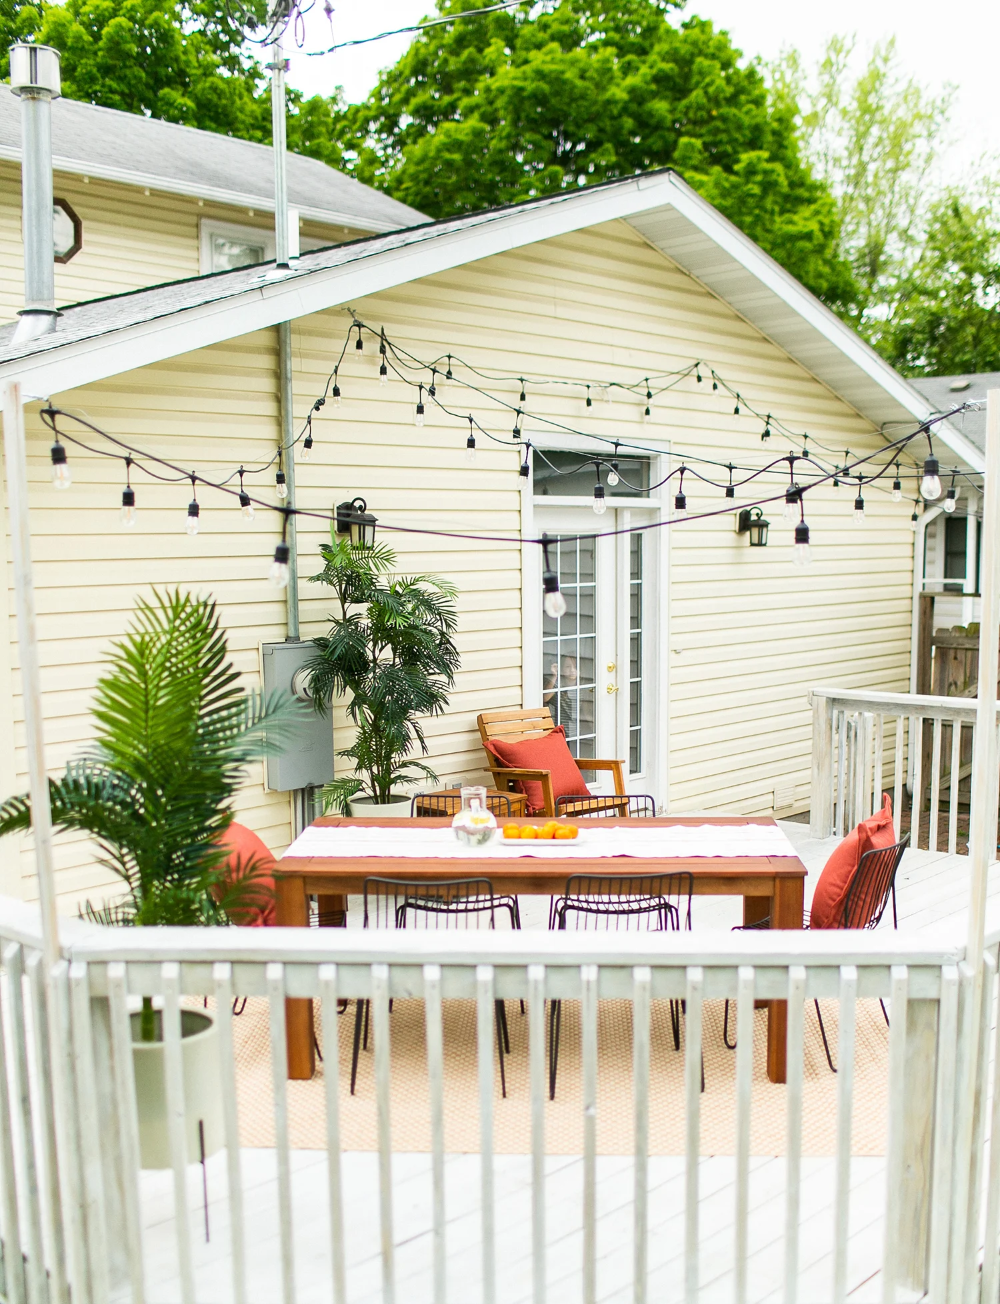 26+ Front porch hanging decor ideas in 2021